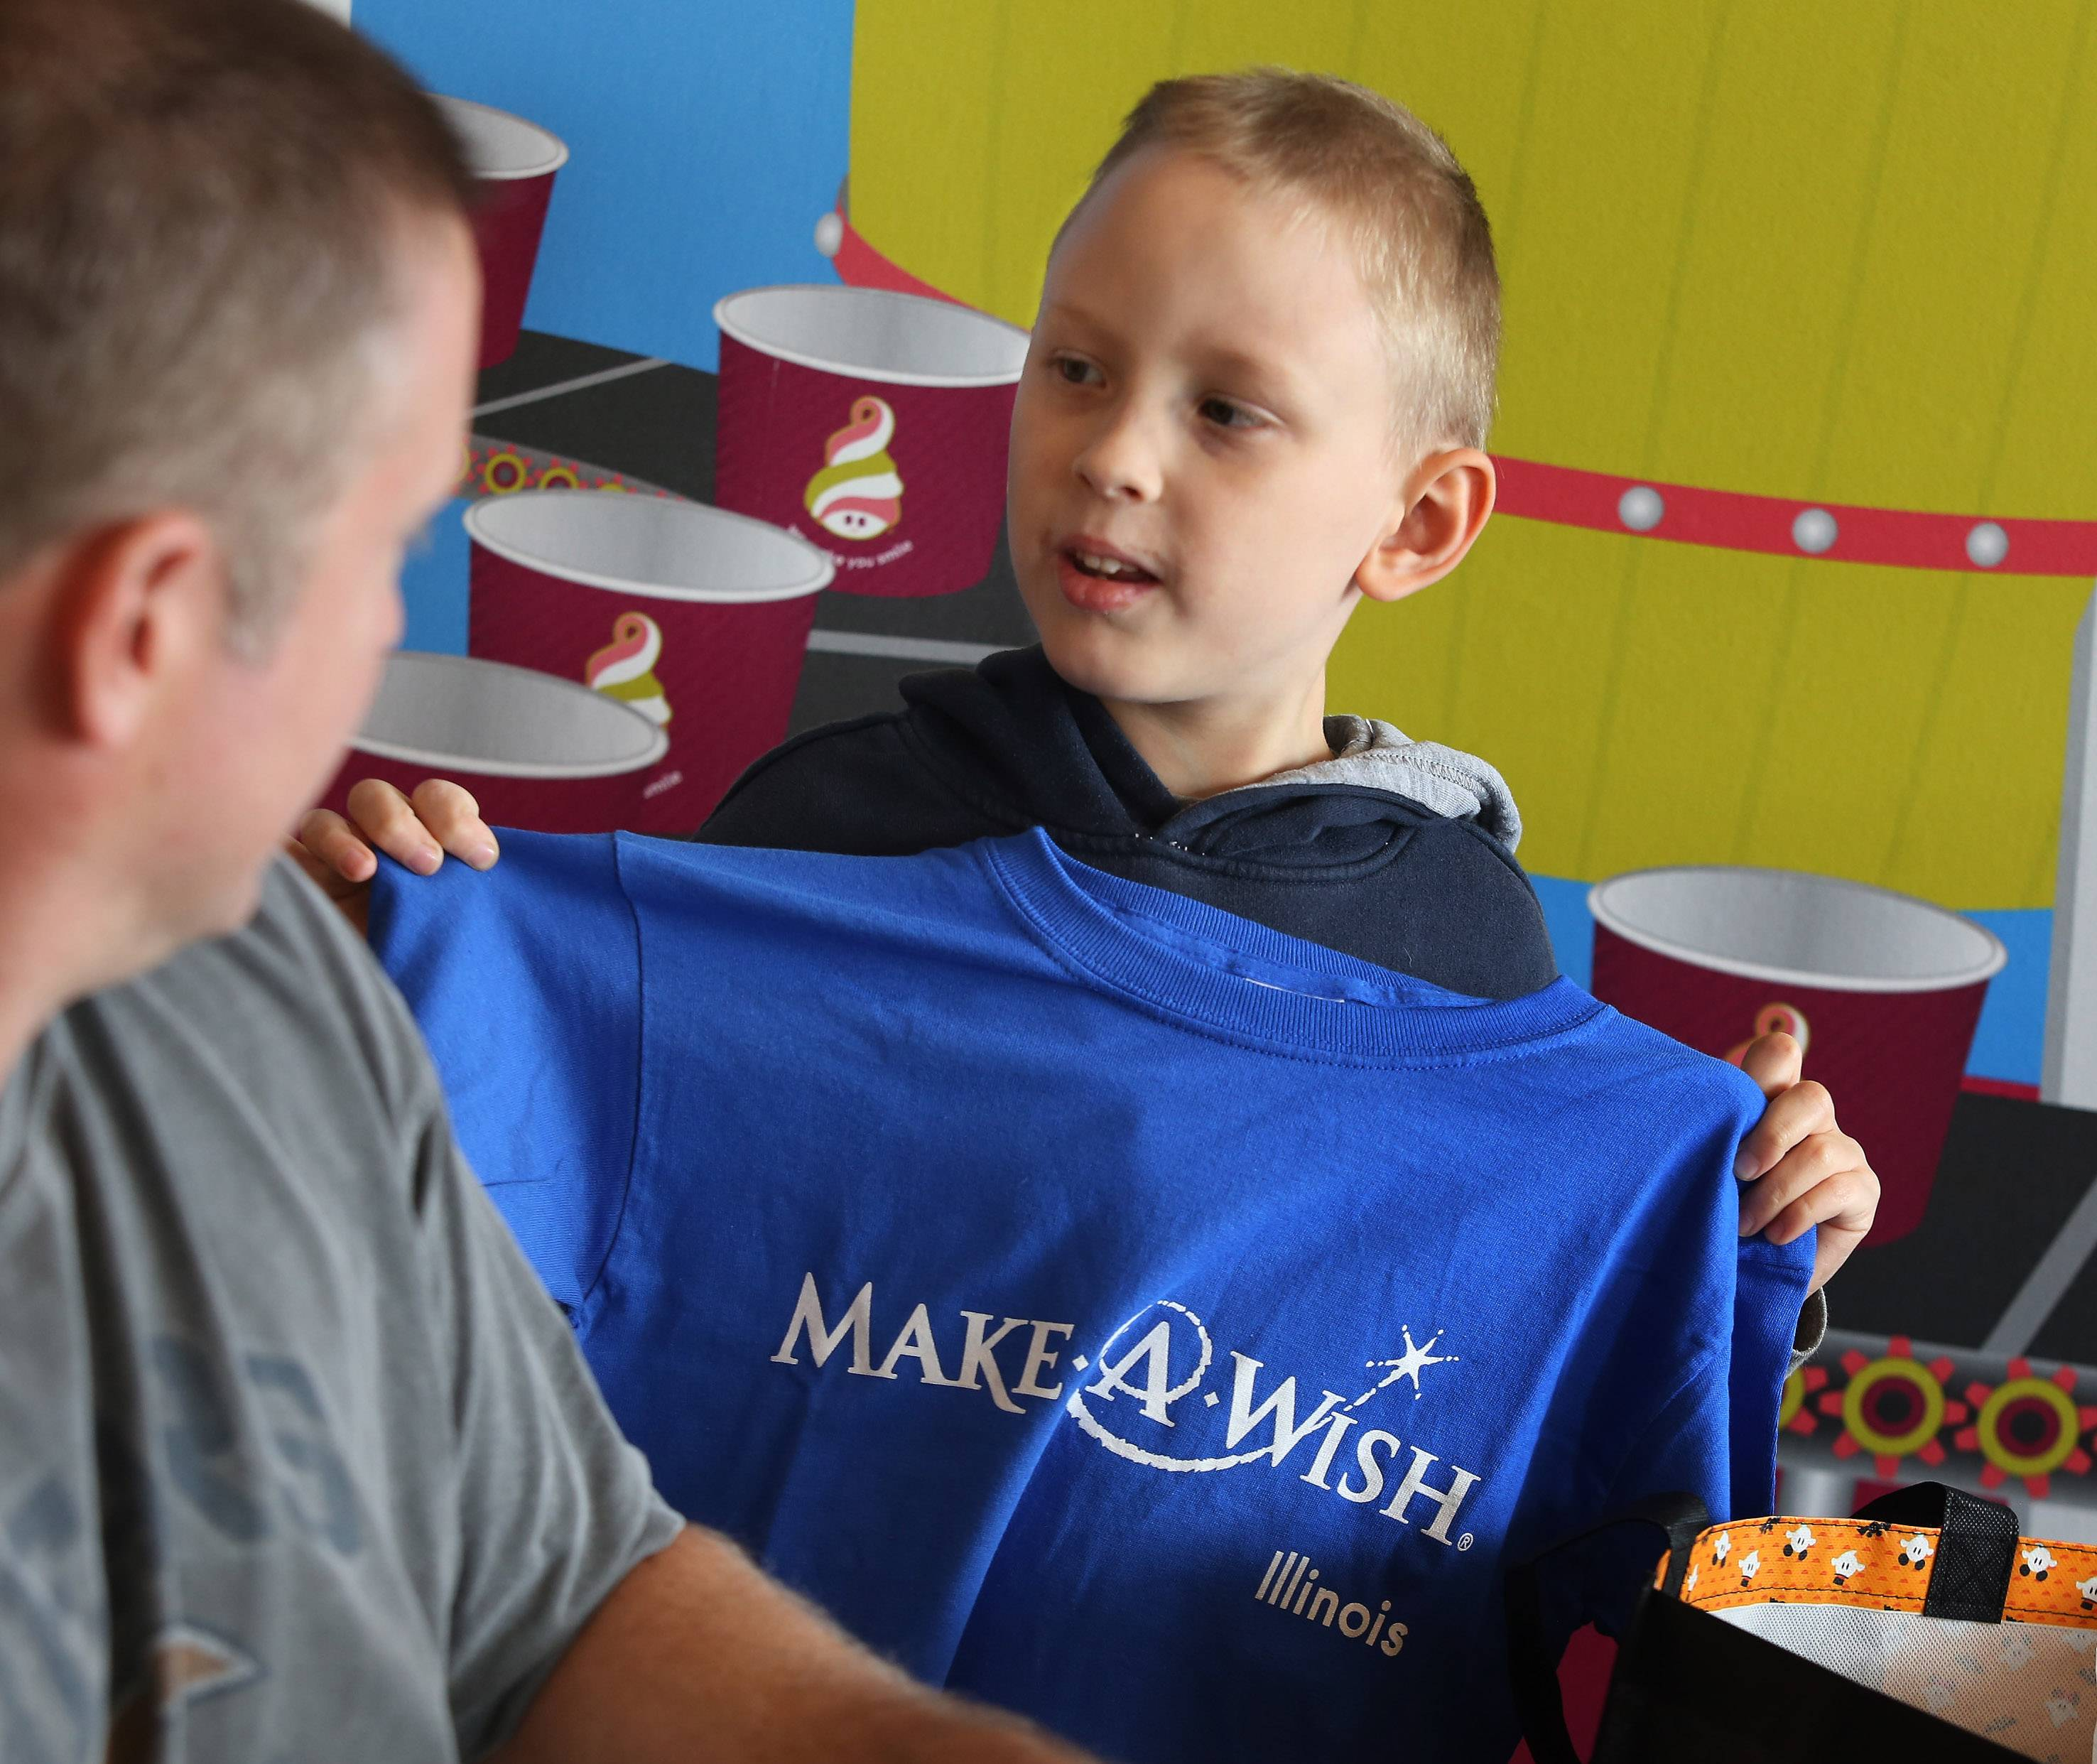 Make-A-Wish helps Arlington Heights boy become a Jedi